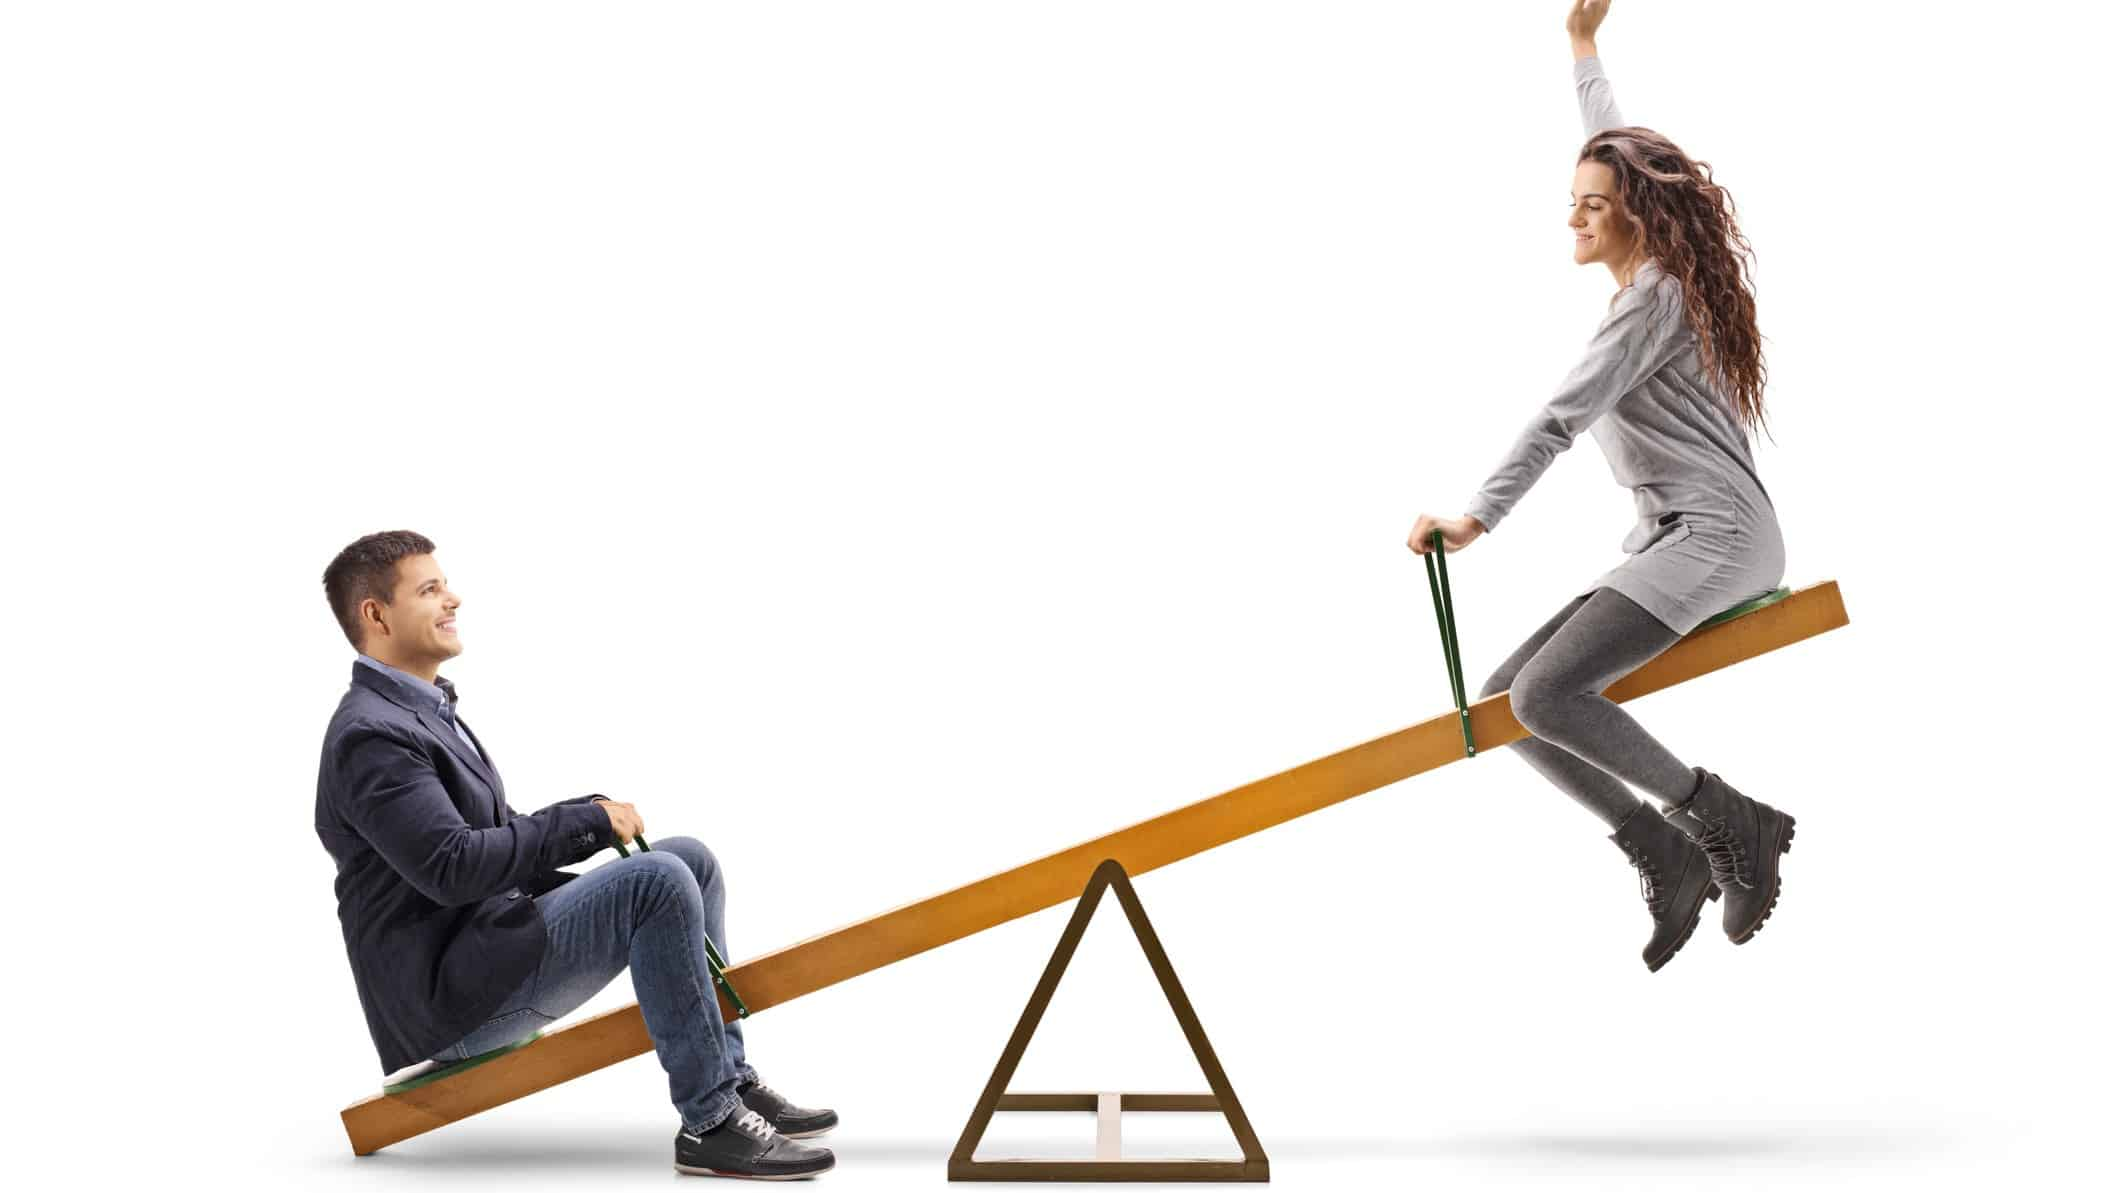 volatile asx share price represented by two investors on a seesaw